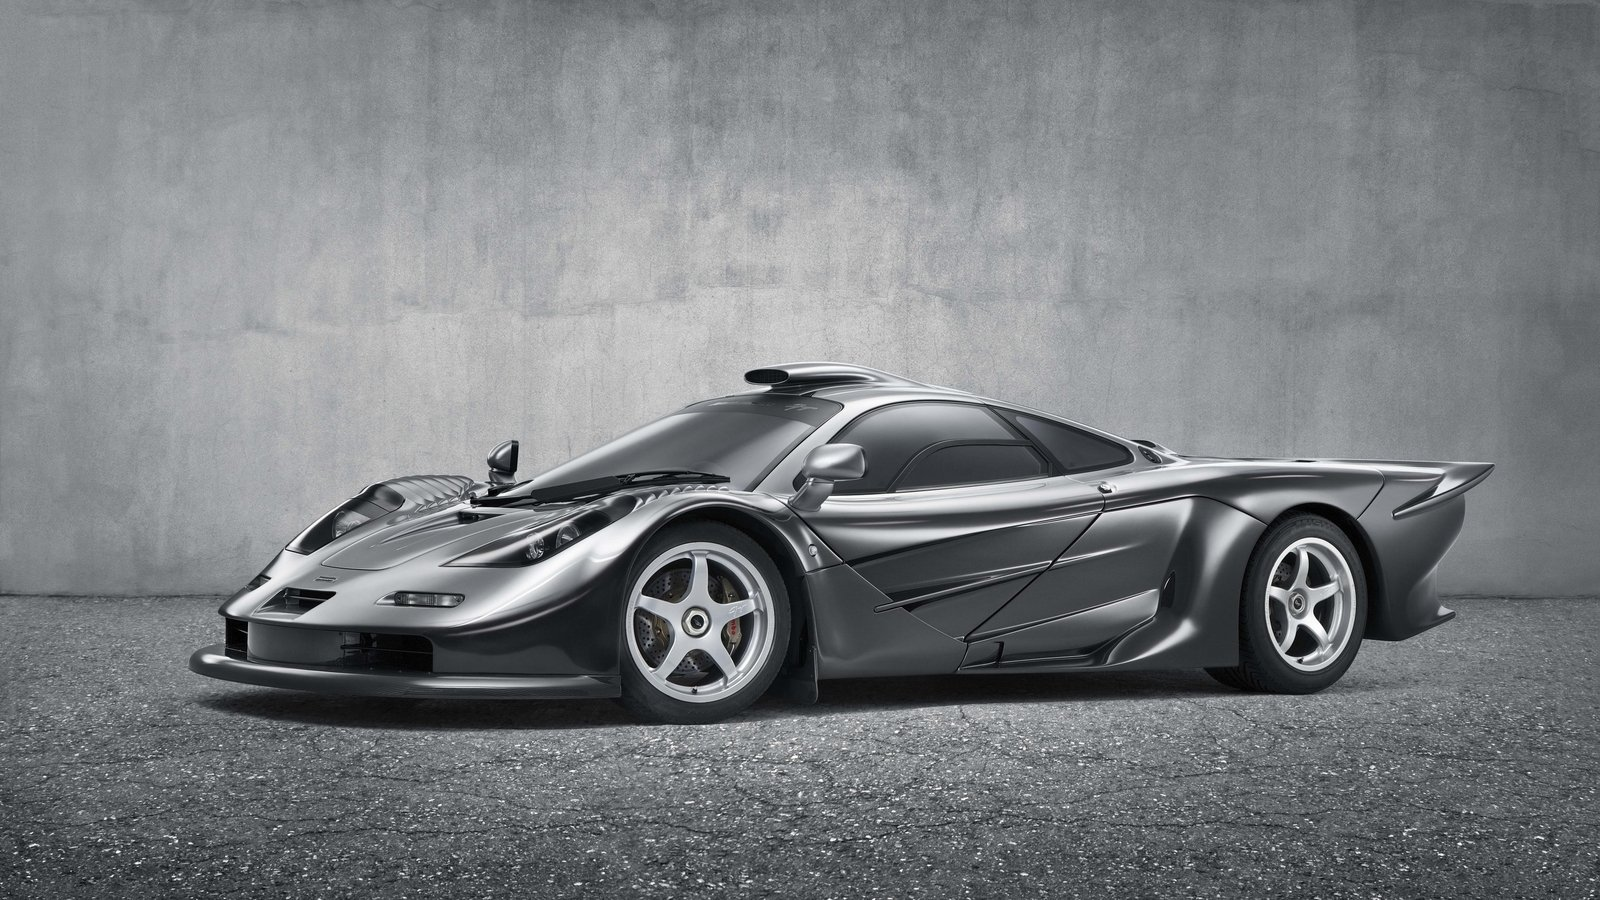 1997 Mclaren F1 Gt Top Speed